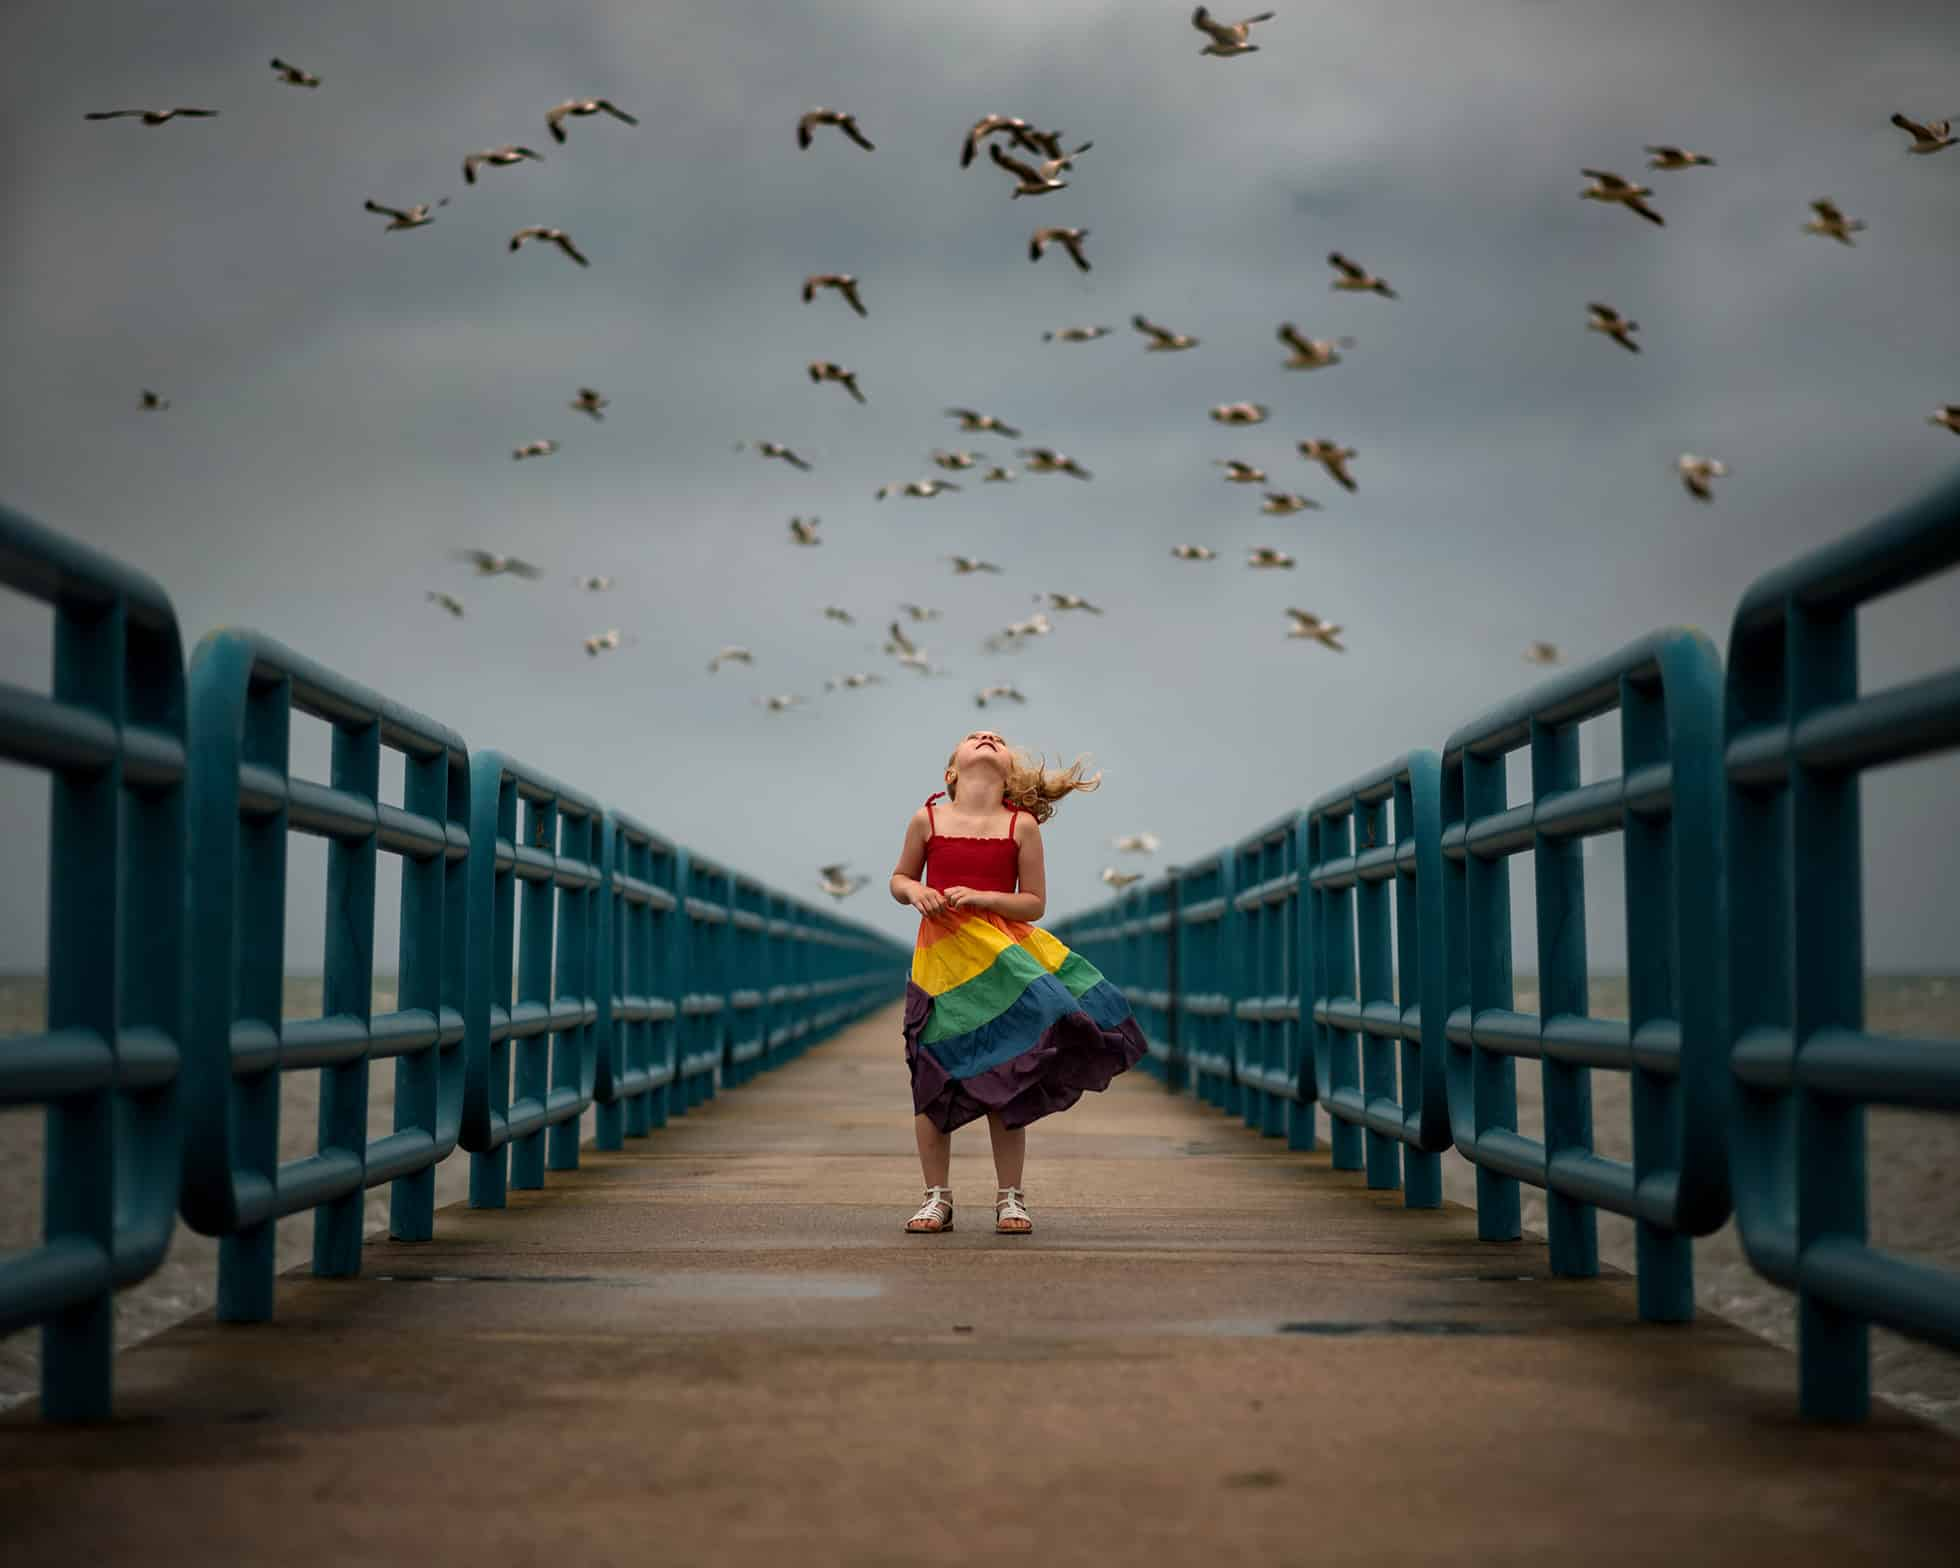 A small girl standing in the middle of a bridge with a bunch of birds above her